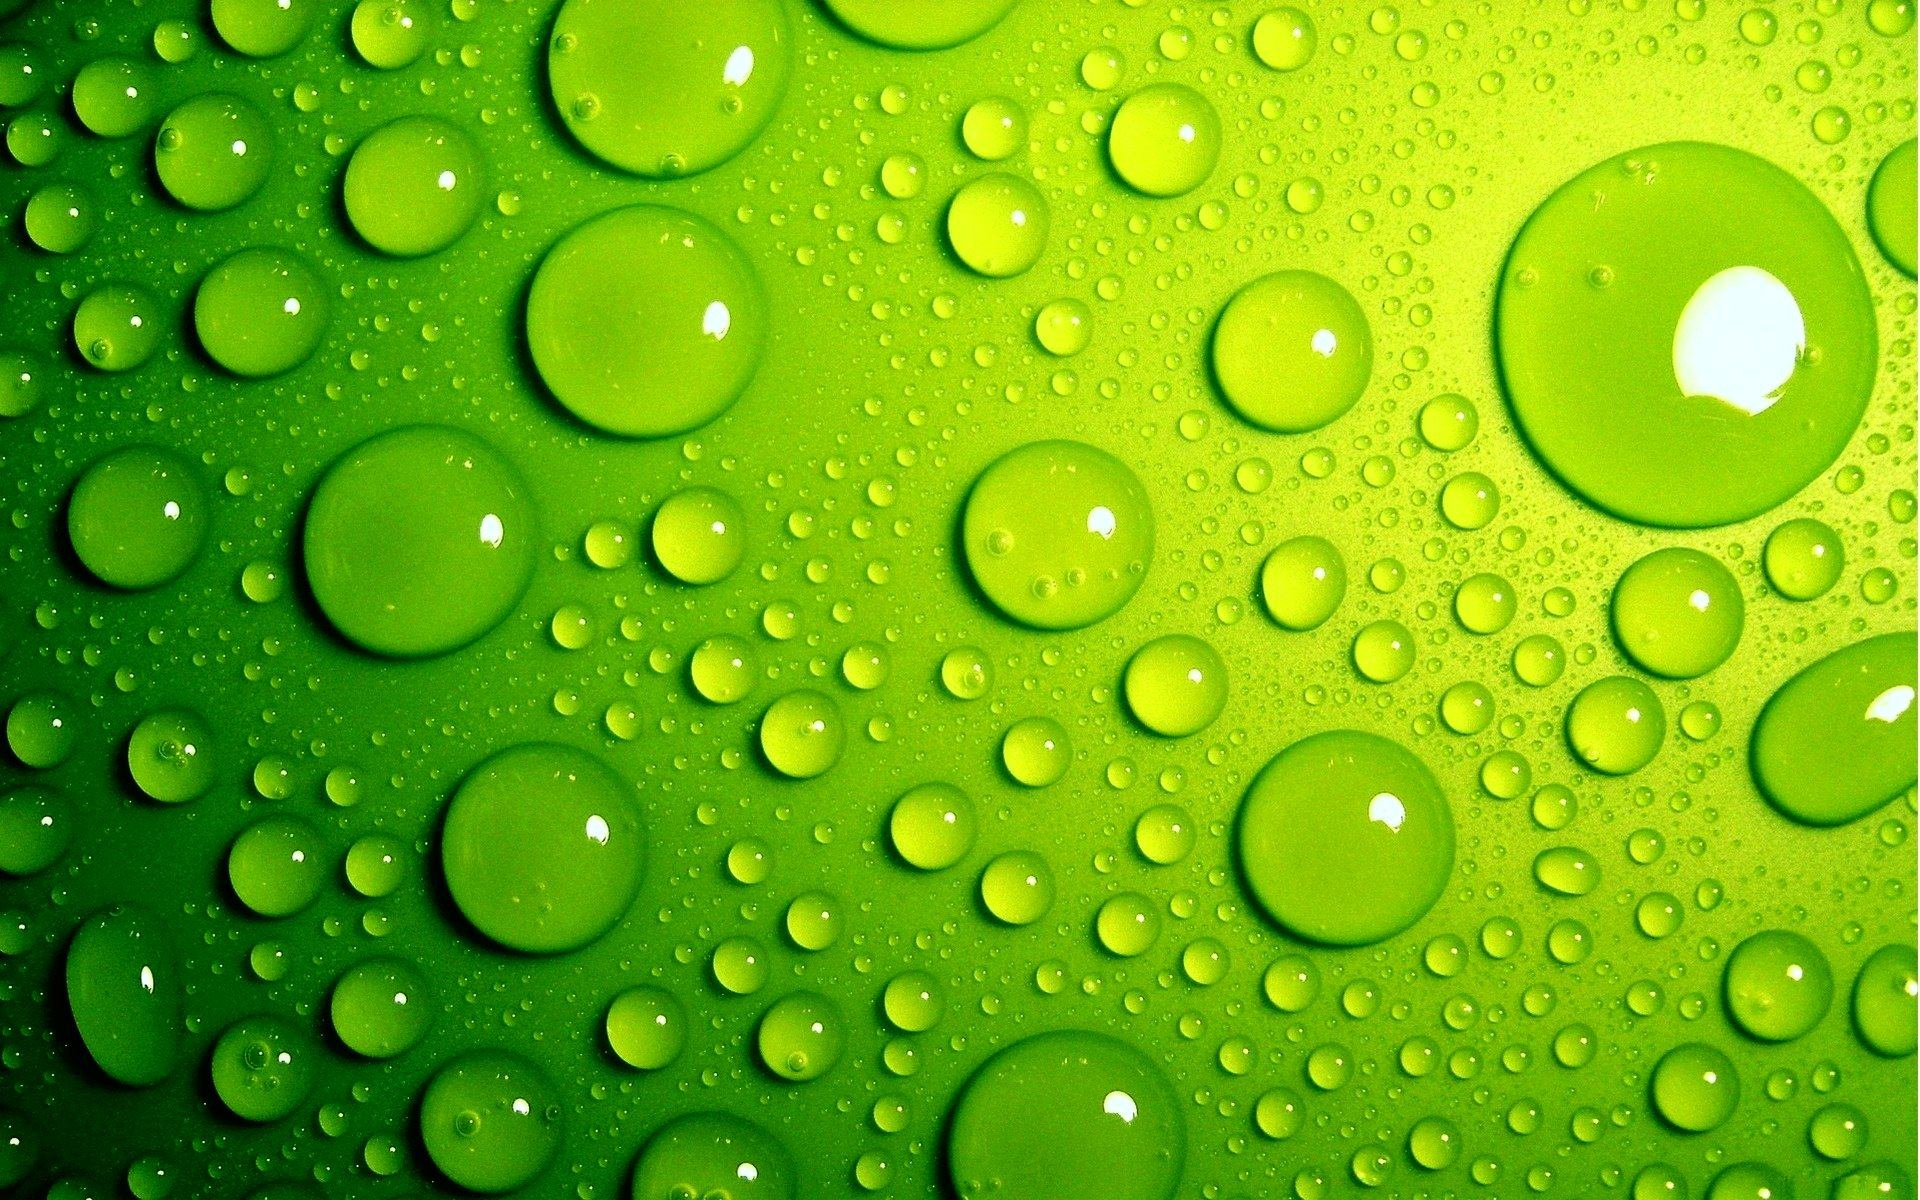 Green Wallpaper 11 1920x1200